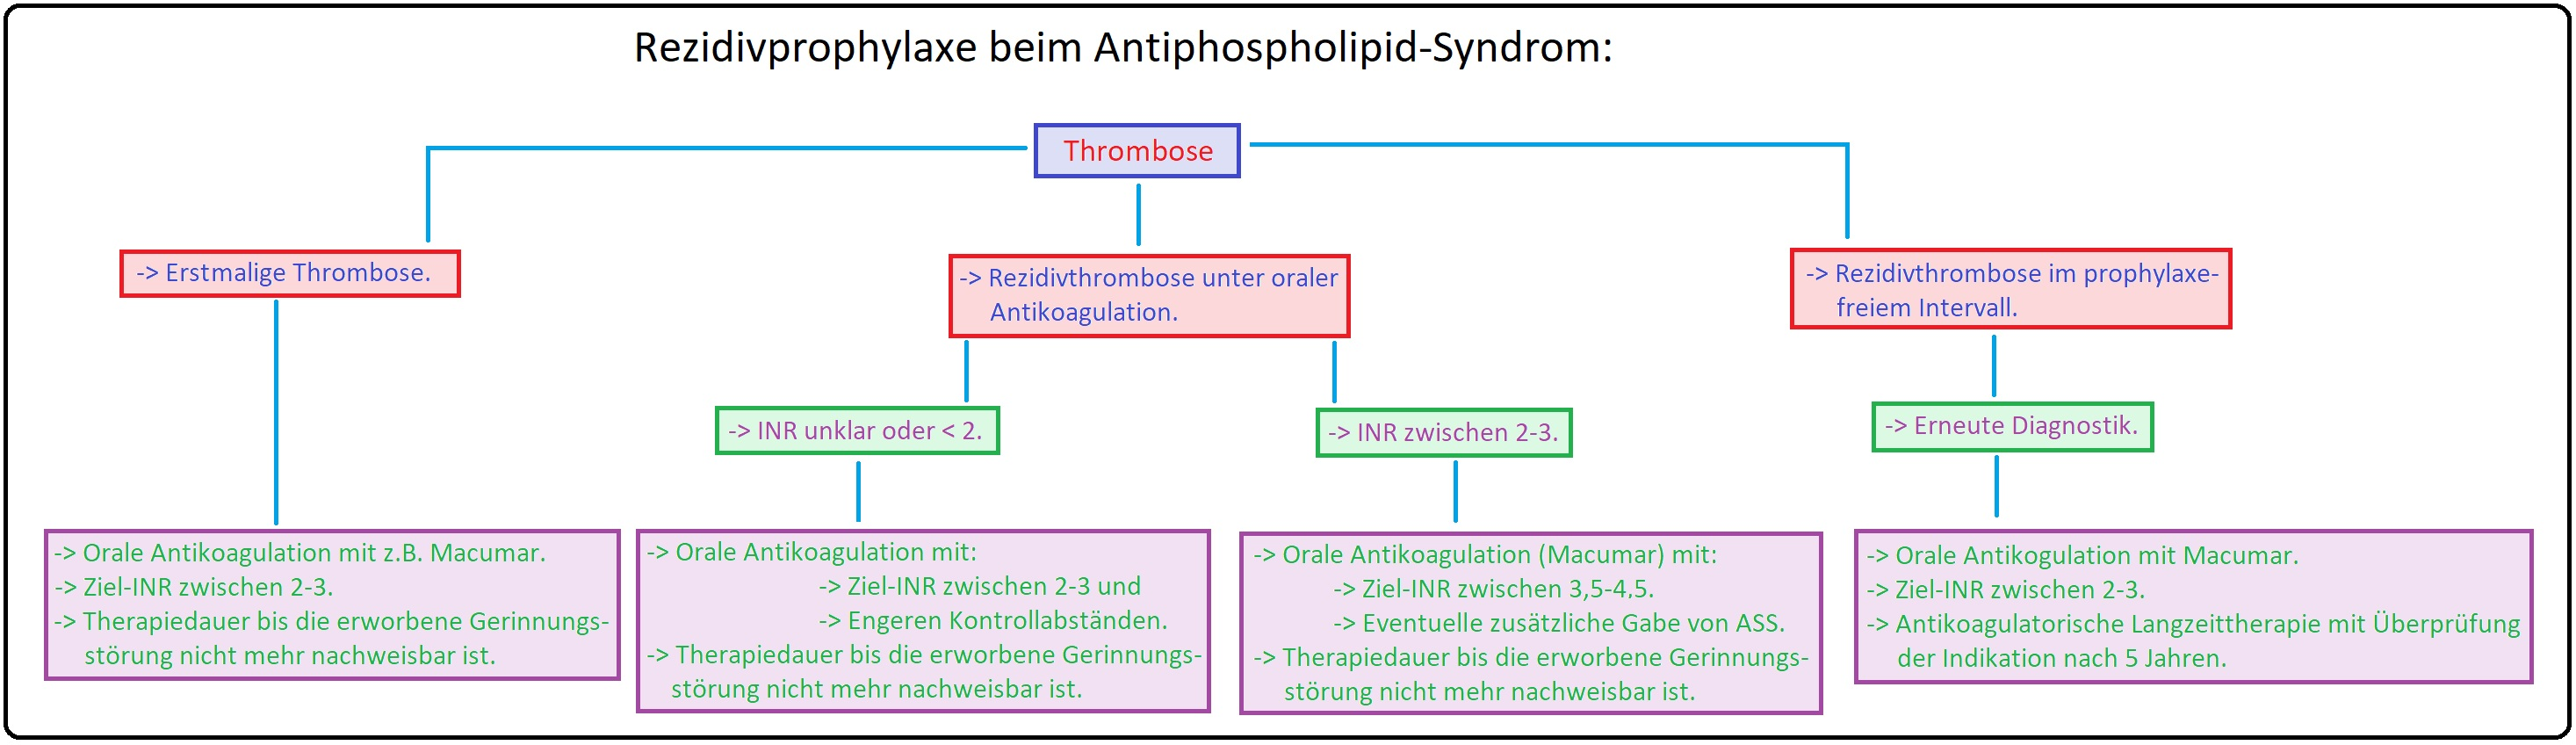 1109 Rezidivprophylaxe beim Antiphospholipid Syndrom